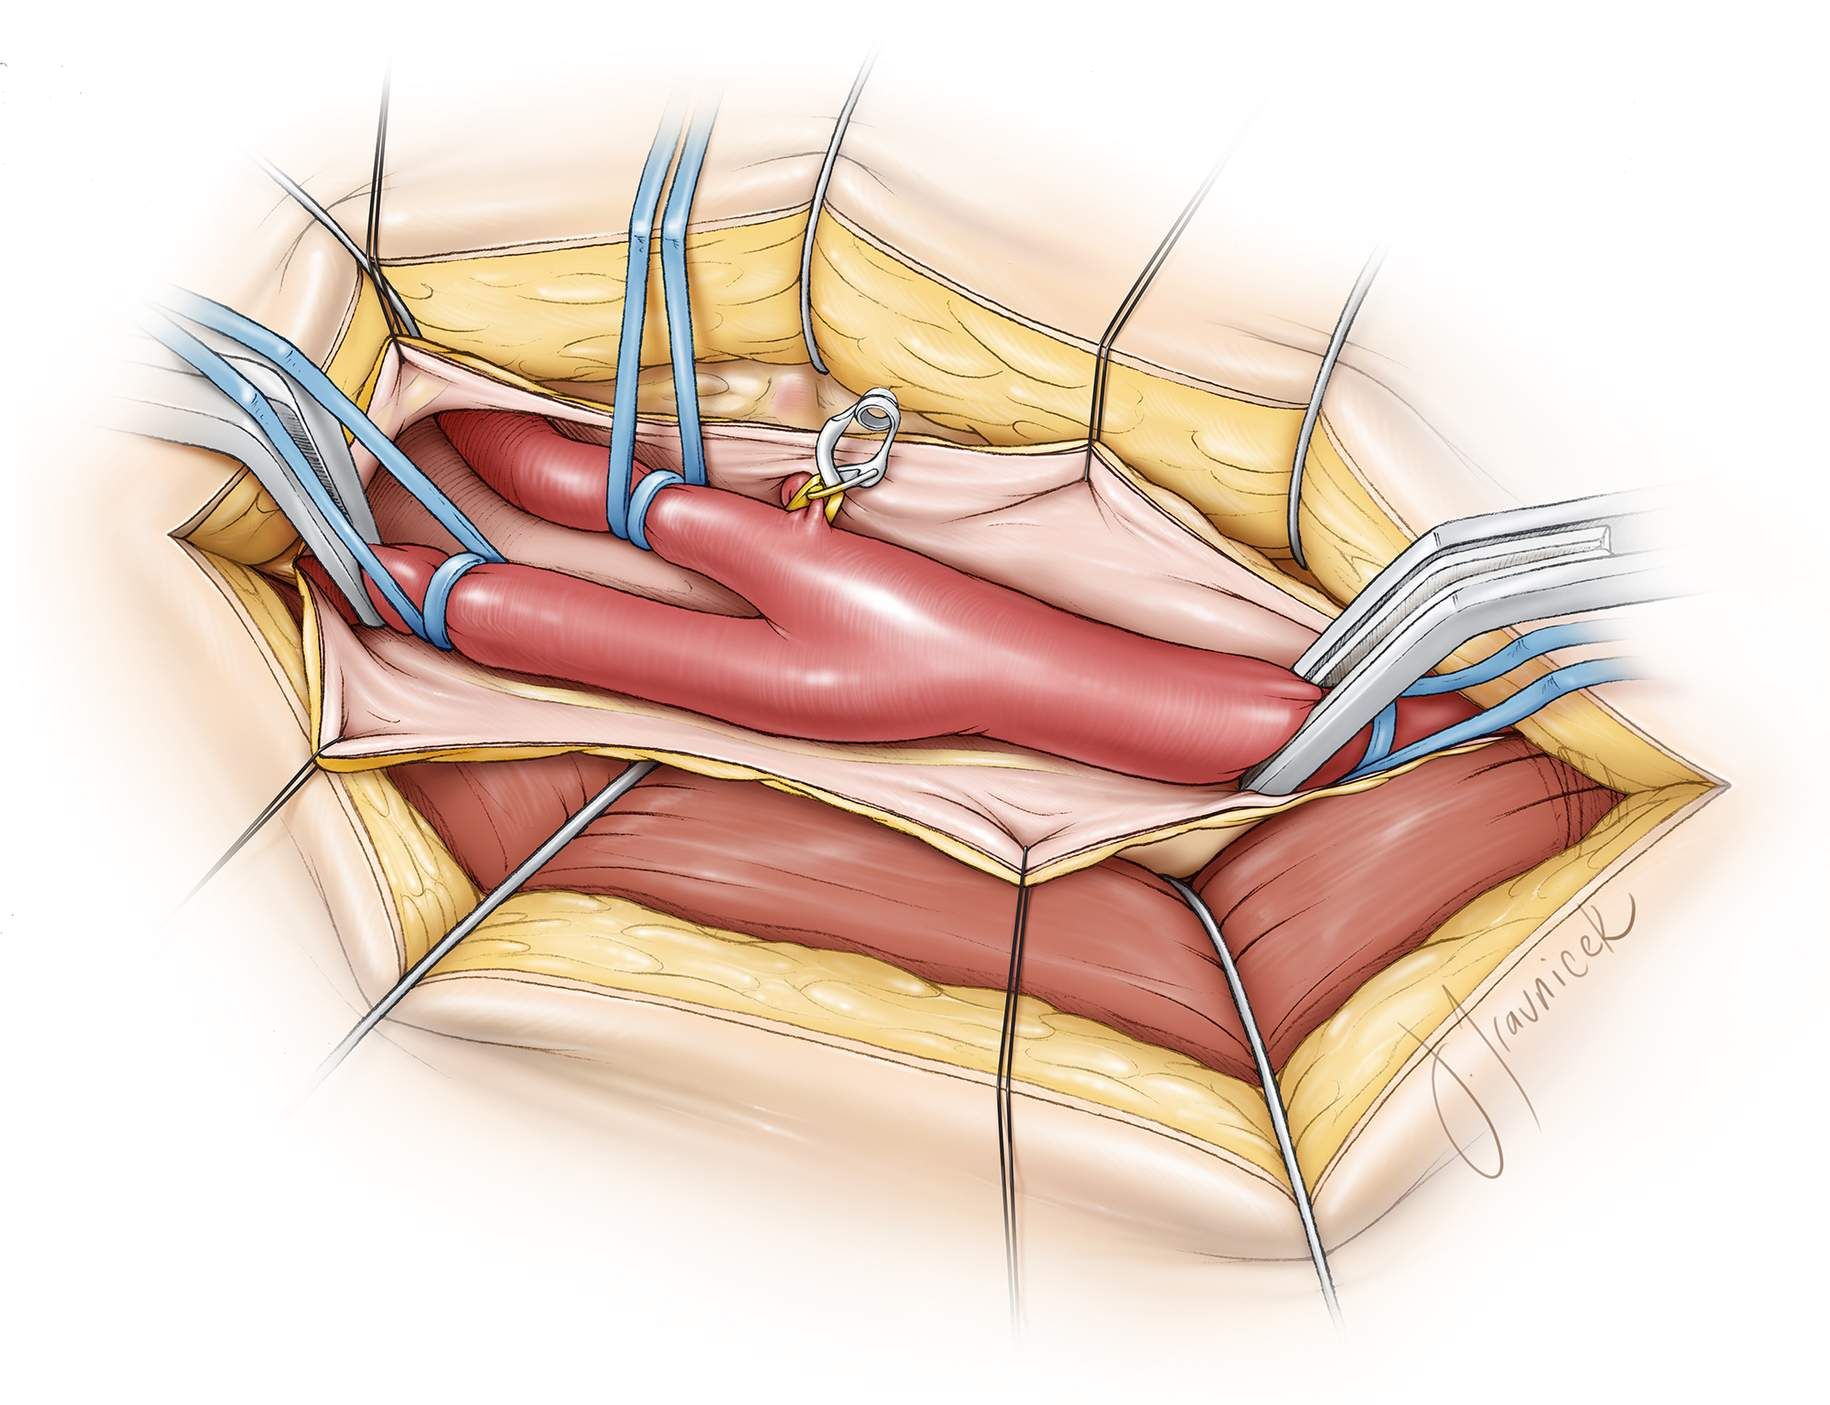 Figure 10:  I incise the carotid sheath parallel to the axis of the ICA and place the lateral edges of the sheath under tension using the fish-hooks or four sutures. This key maneuver elevates the ICA out of its groove closer to the surgeon, and remarkably eases the later steps and working angles of the operation.  Long vascular clamps (long aneurysm clips or bulldog clamps) are placed distal to the vessel loops on the ICA, and a Fogarty vascular clamp is placed on the CCA proximal to the plaque. The vessel loops on the ICA hold the ICA clamp in position. A vessel loop on the ECA is adequate for its occlusion. The ICA is occluded first.